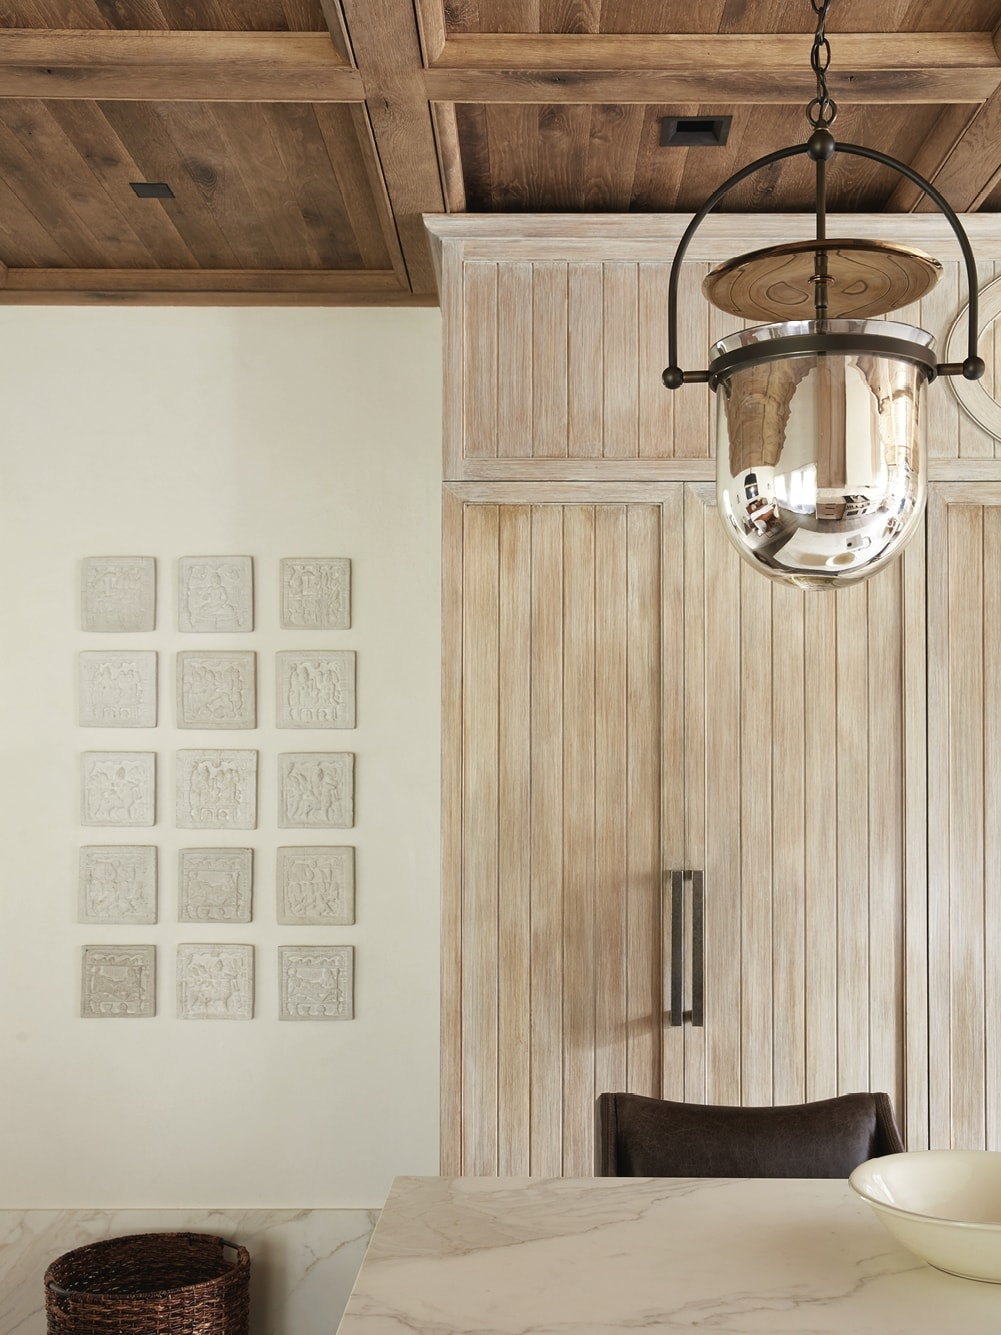 Kitchen pantry and light fixture